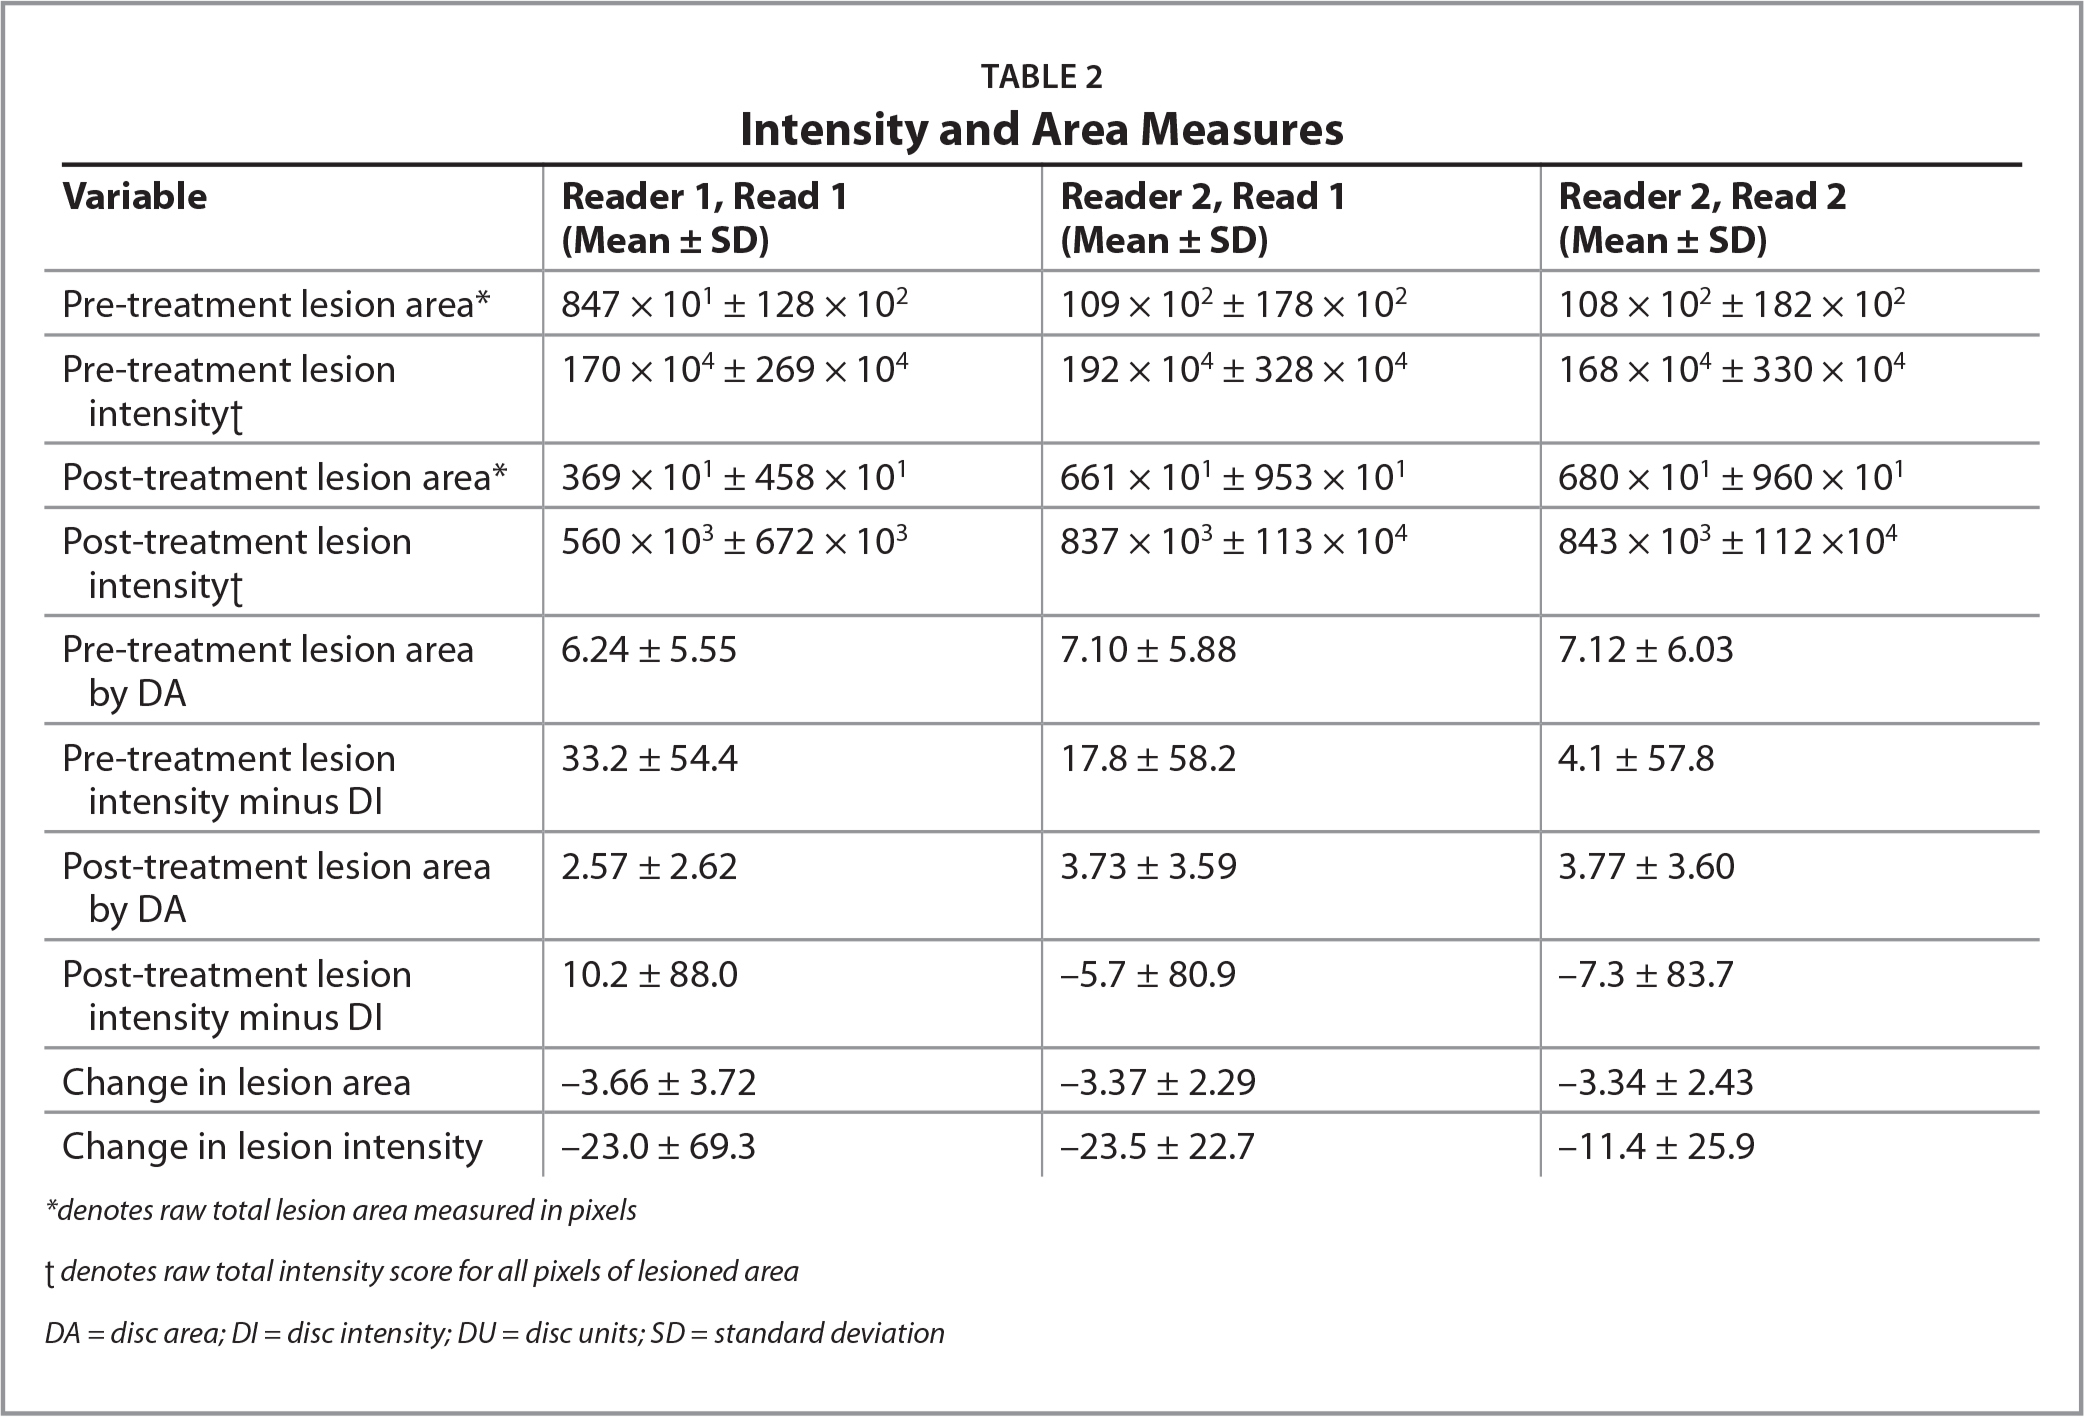 Intensity and Area Measures